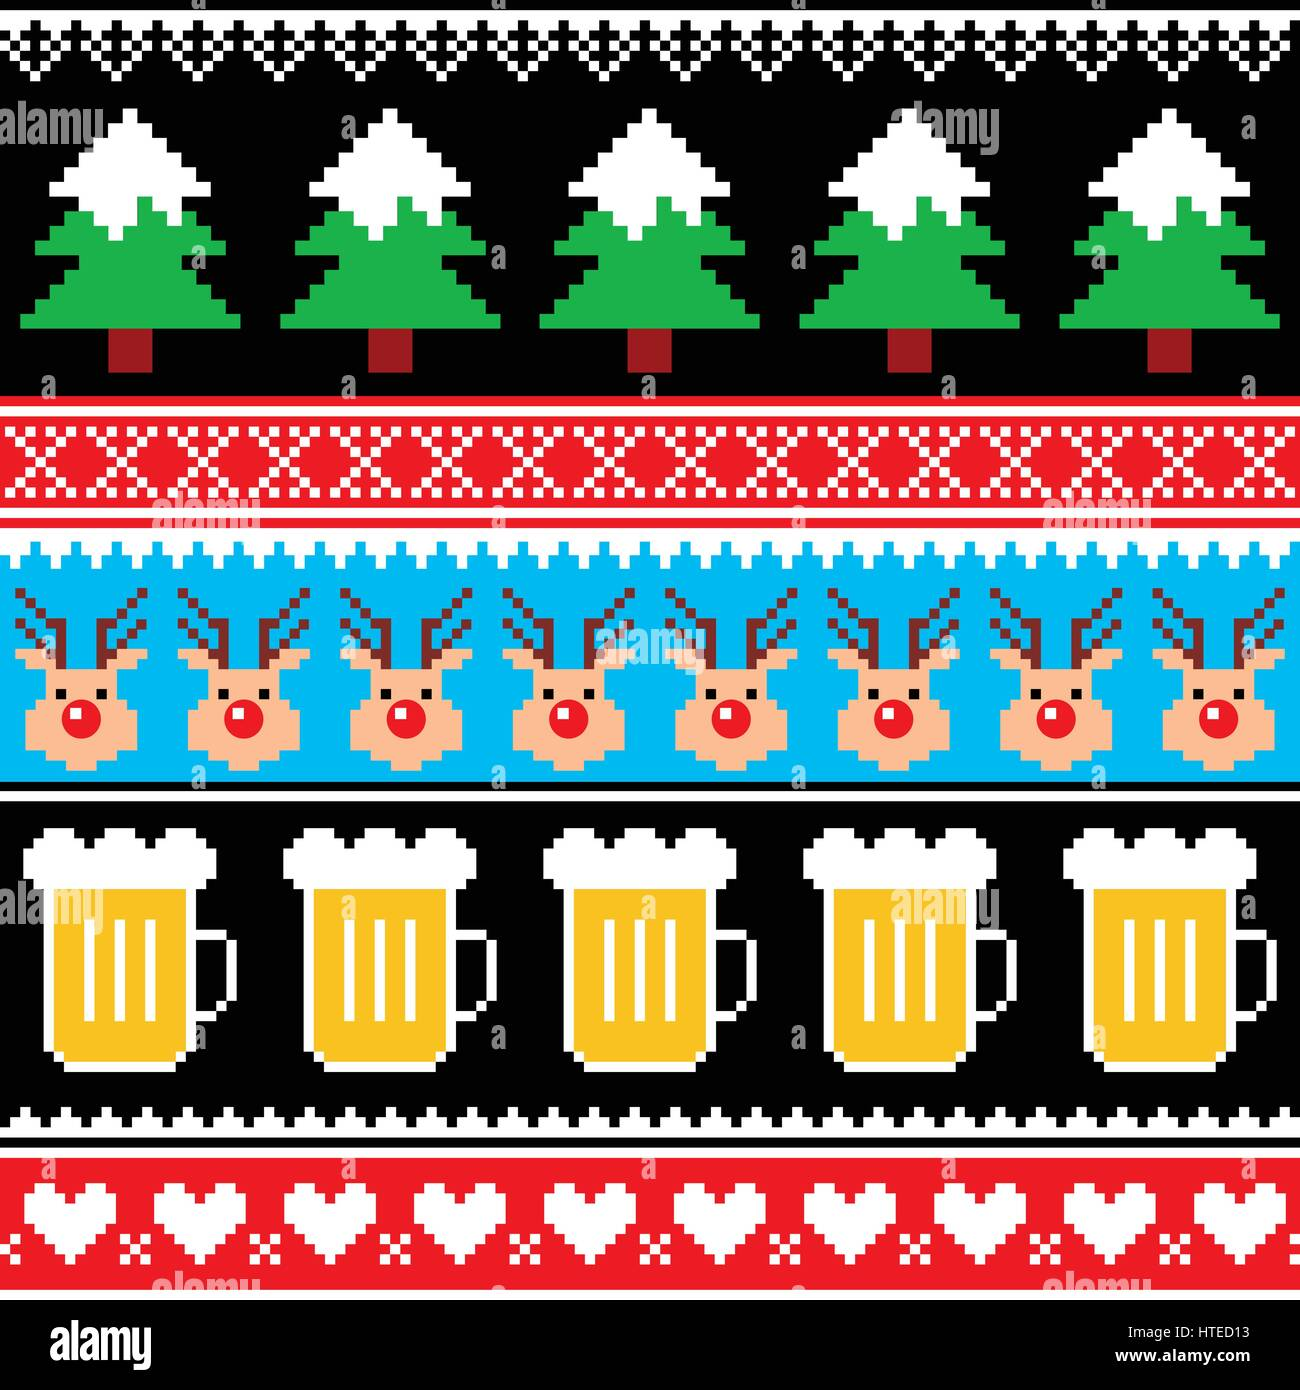 Ugly Christmas Sweaters Patterns.Ugly Christmas Sweater Stock Photos Ugly Christmas Sweater